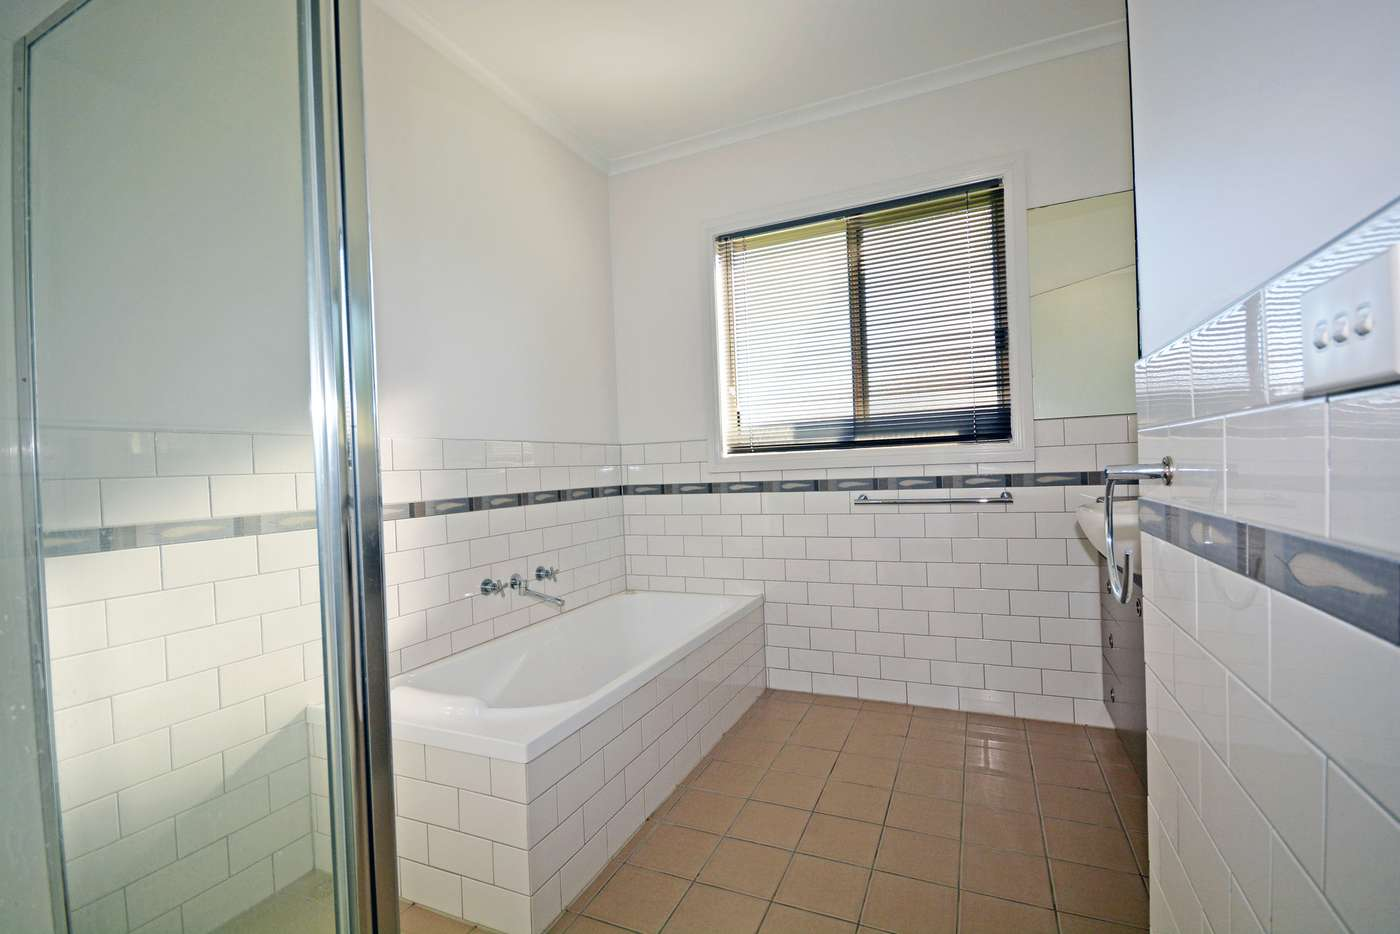 Sixth view of Homely house listing, 11 Sanford Court, Portland VIC 3305